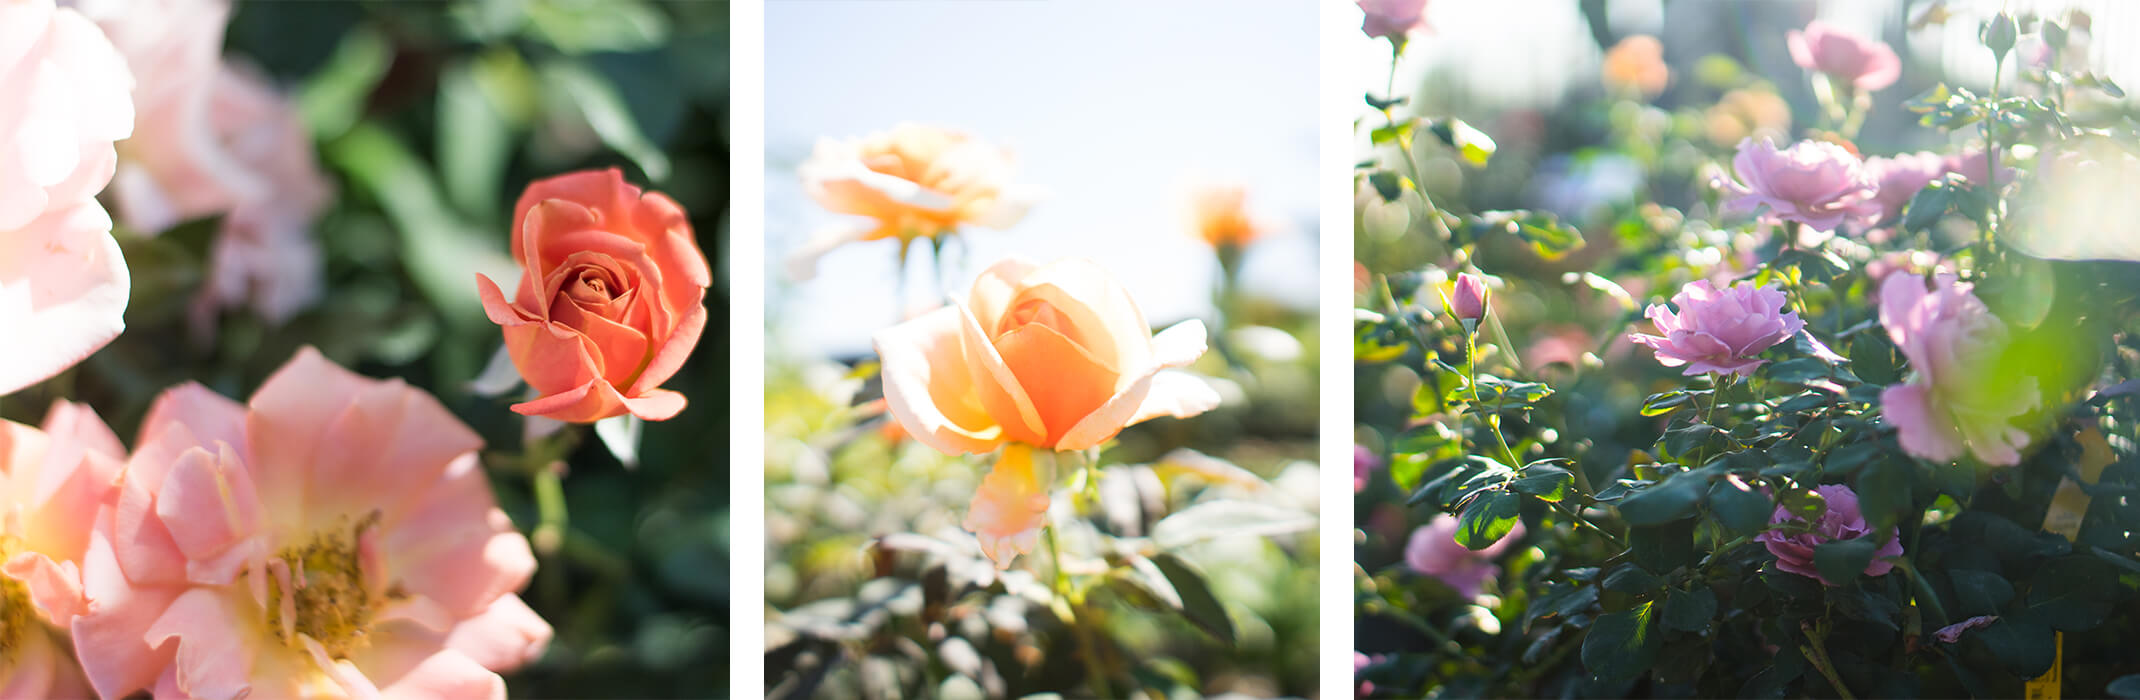 3 Photo of different color roses - orange, yellow and purple